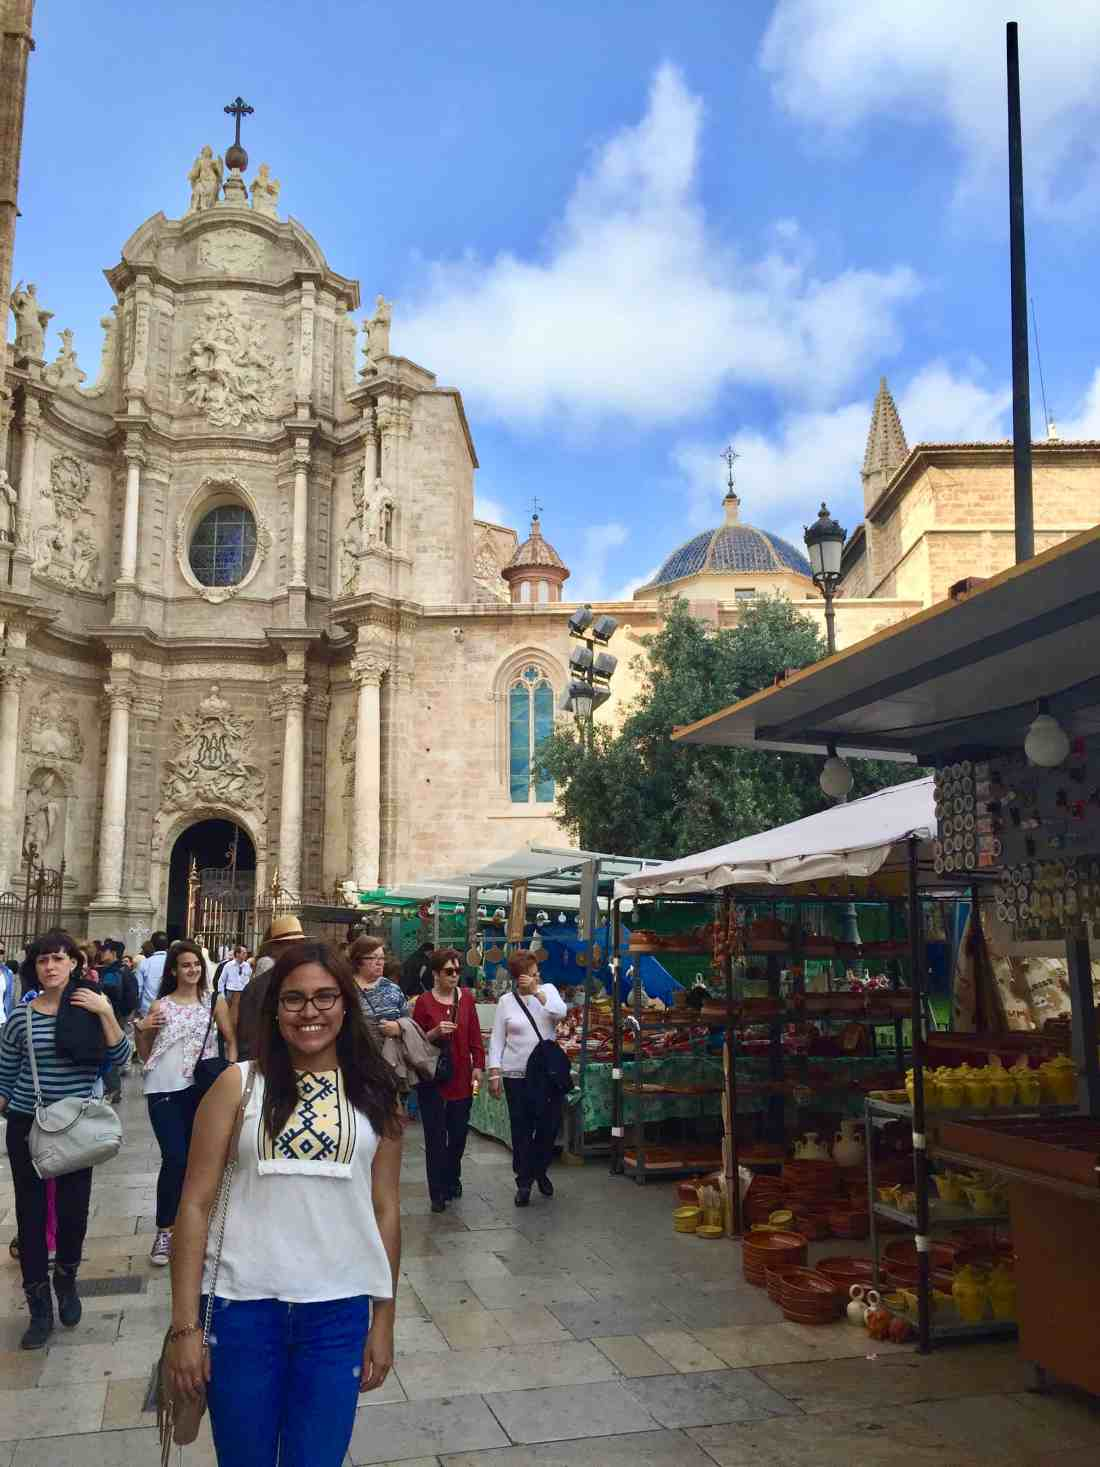 A picture of me being a tourist in Valencia, Spain. My friend whom I met in Madrid invited me to come visit her in her hometown.